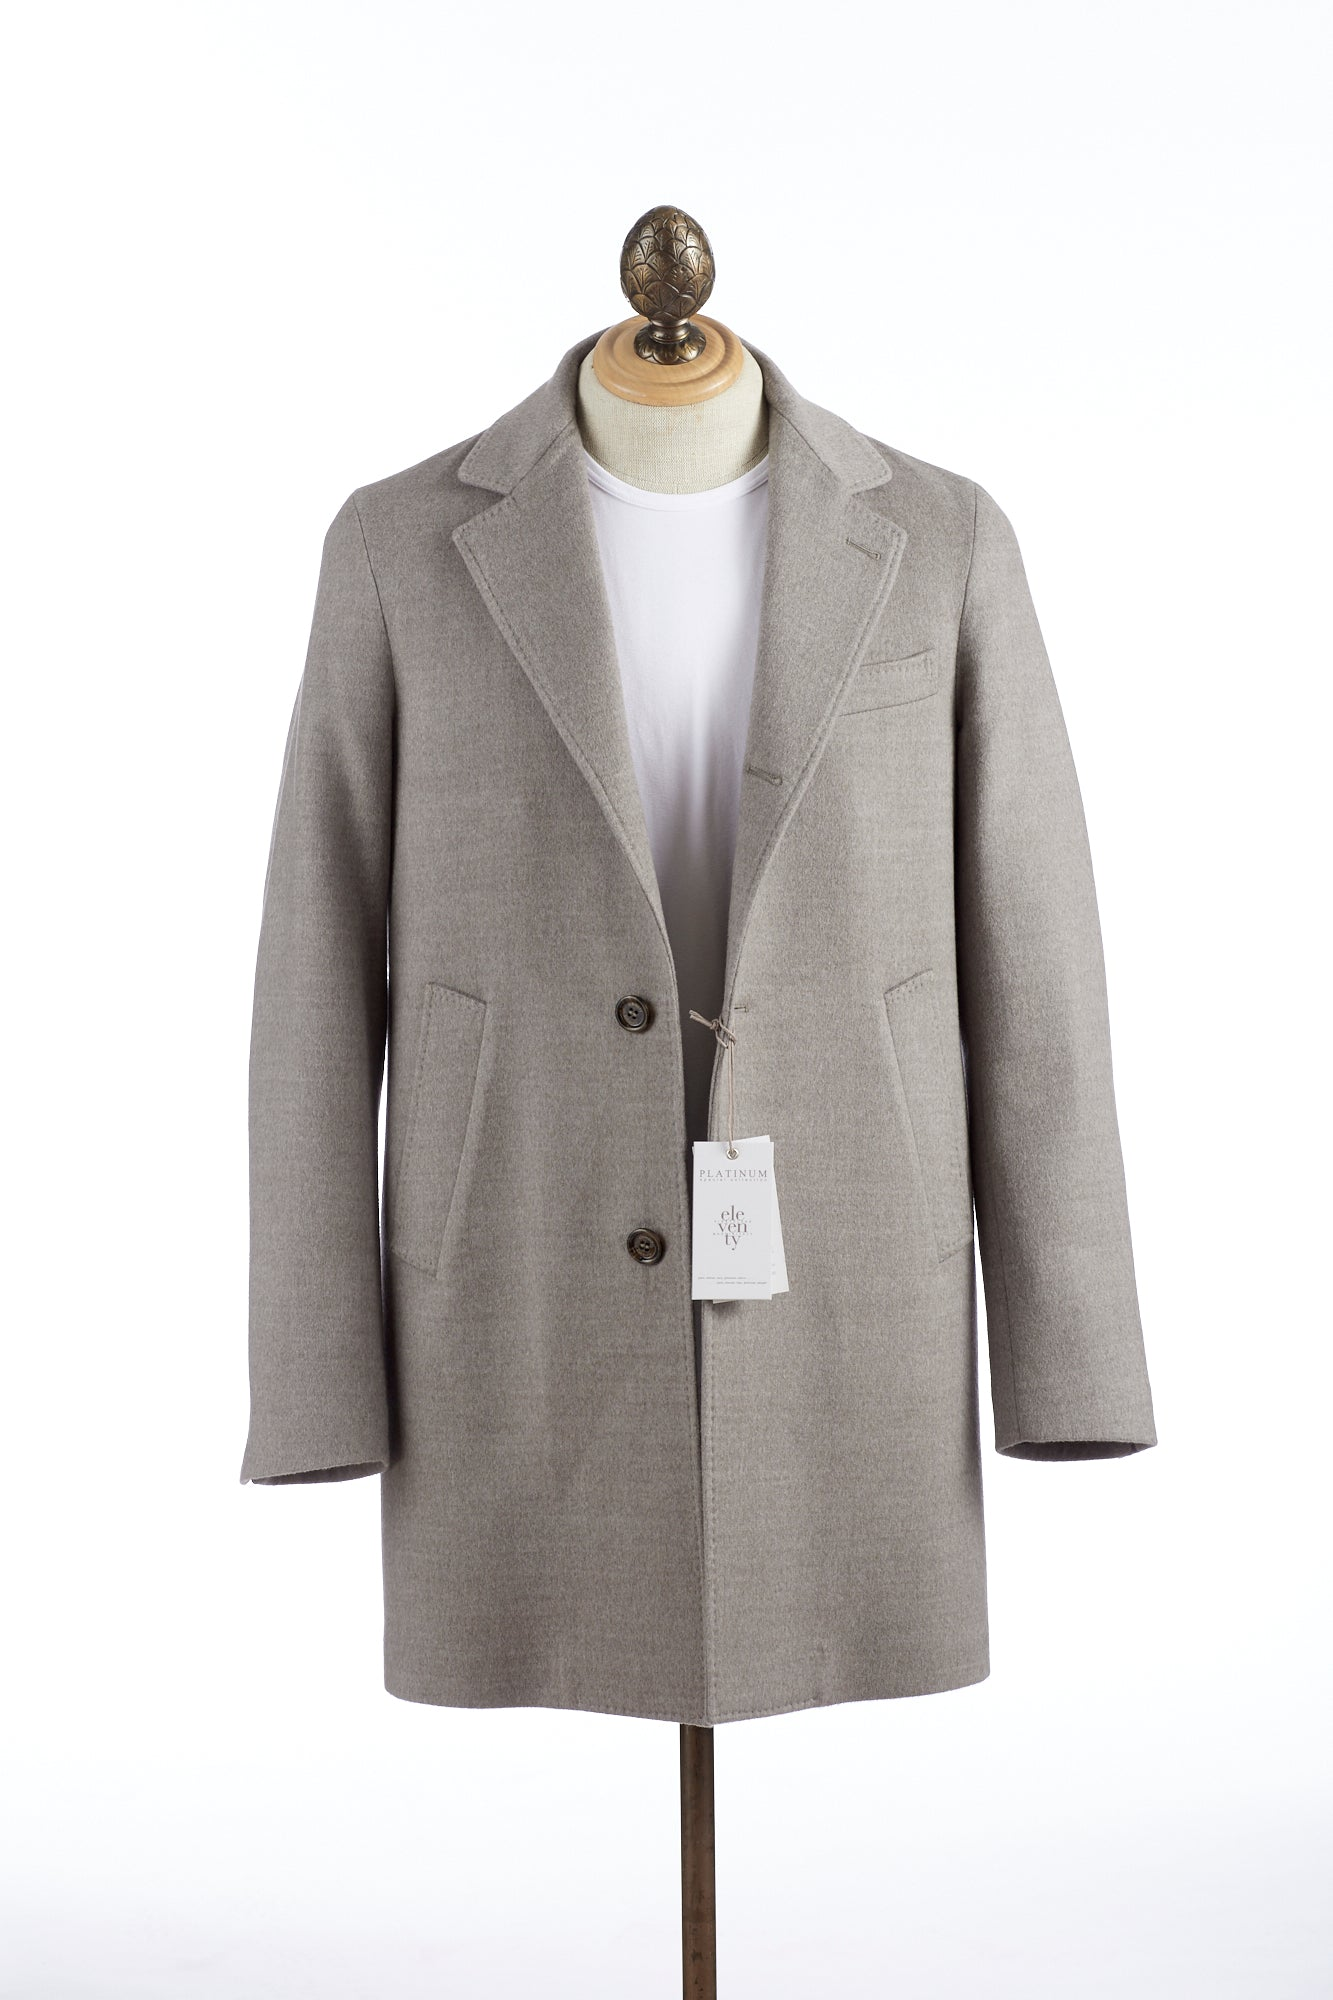 Eleventy Taupe Wool Topcoat - Outerwear - Eleventy - LALONDE's